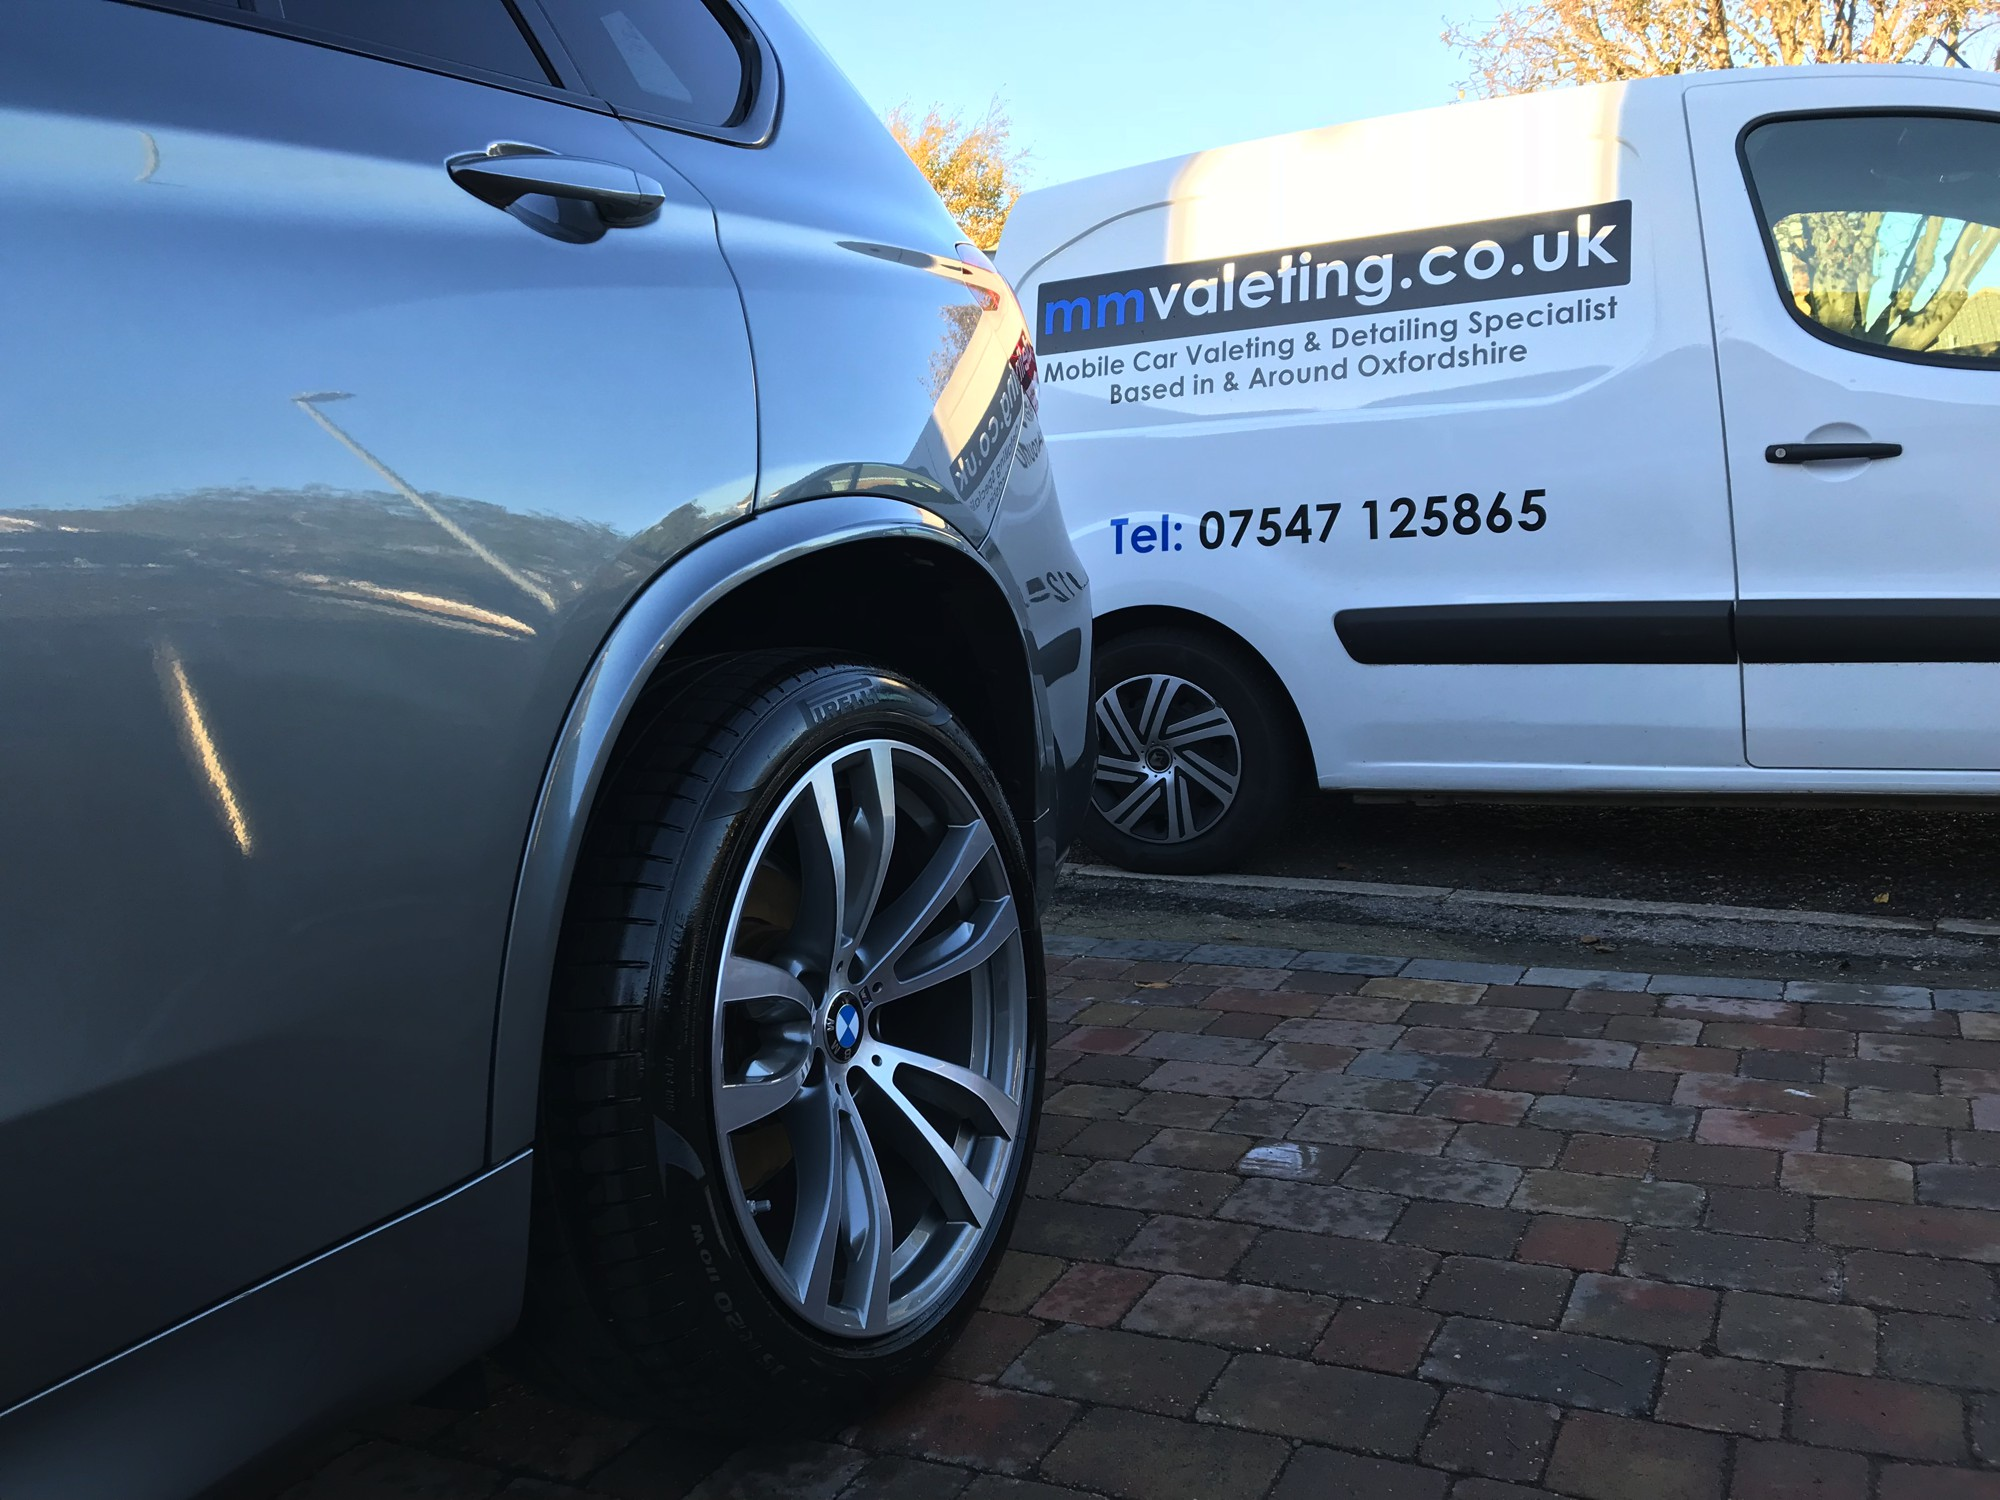 Protect the value of your car with a mini valet from mmvaleting - car detailing and valeting specialists in Buckinghamshire.